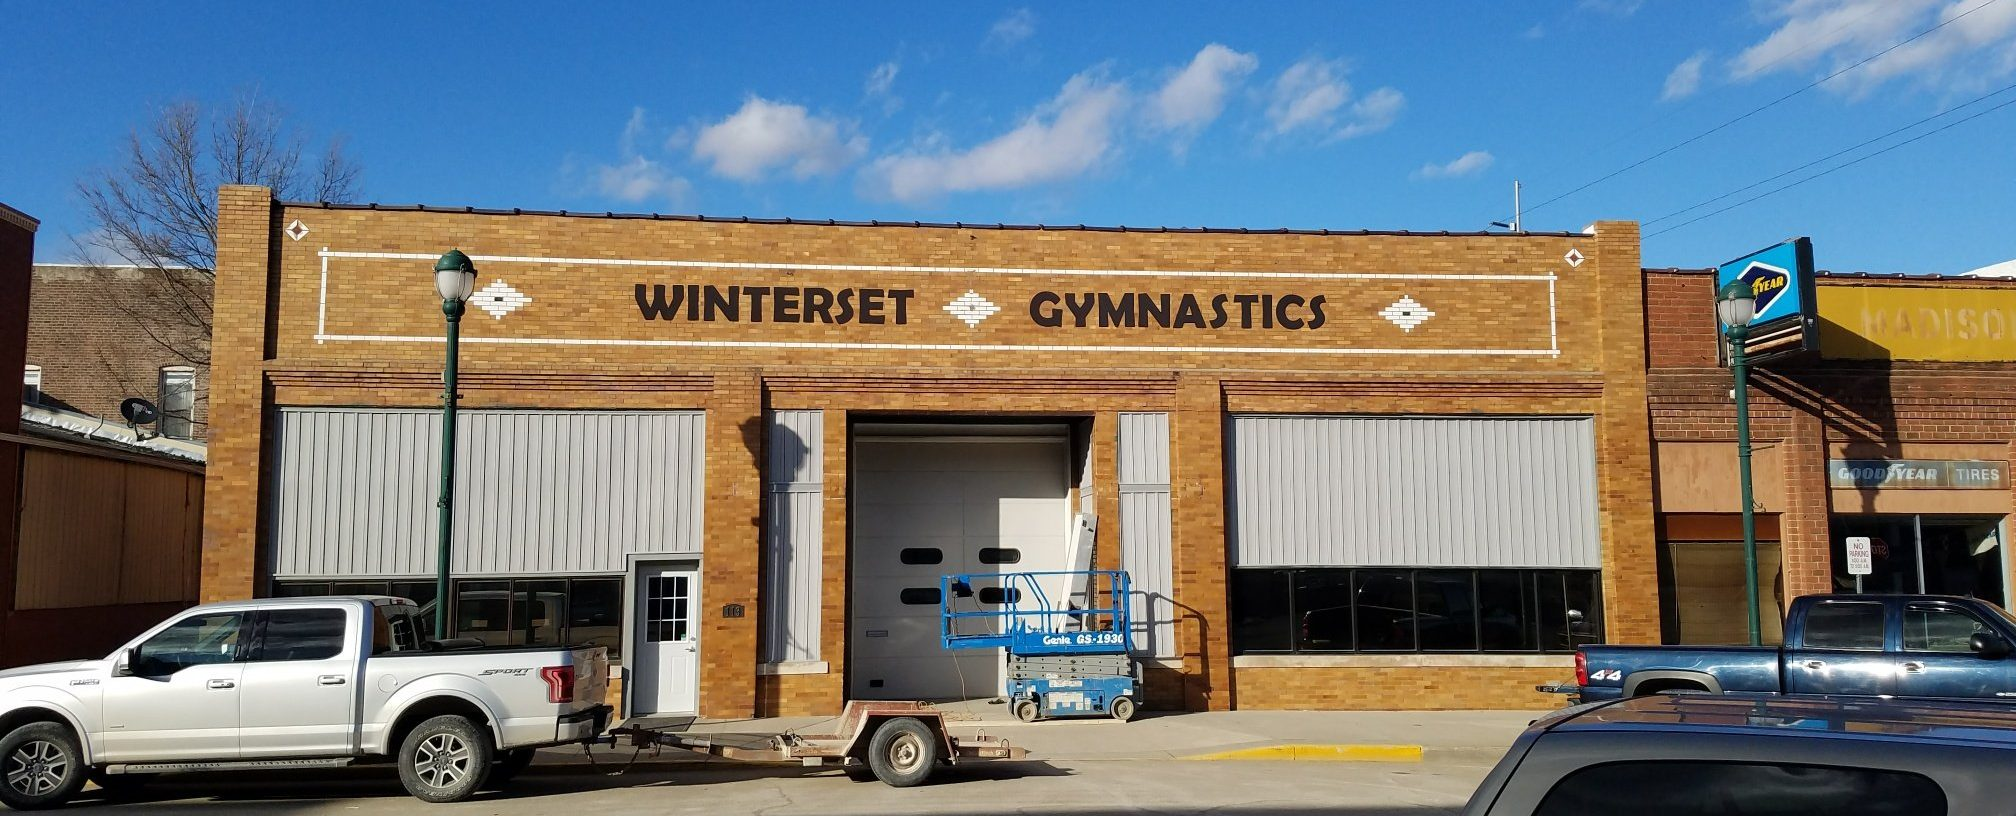 Winterset Gymnastics sign lettering installed